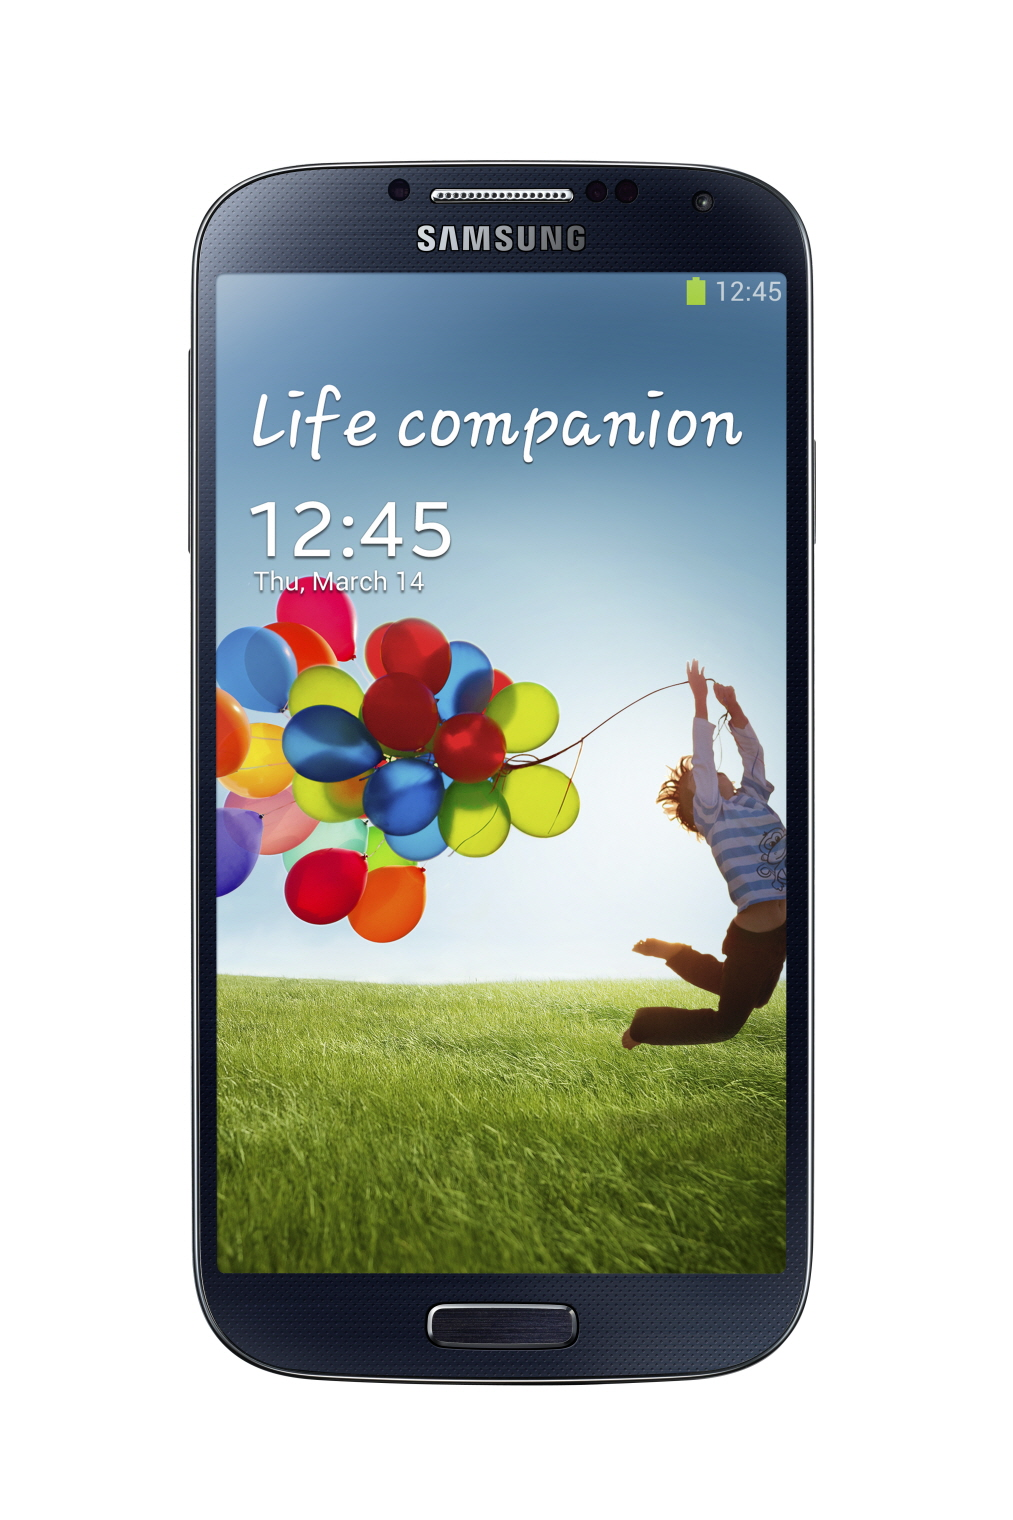 The new flagship Samsung Galaxy S4 is fabulous and it will be the favourite device of millions!